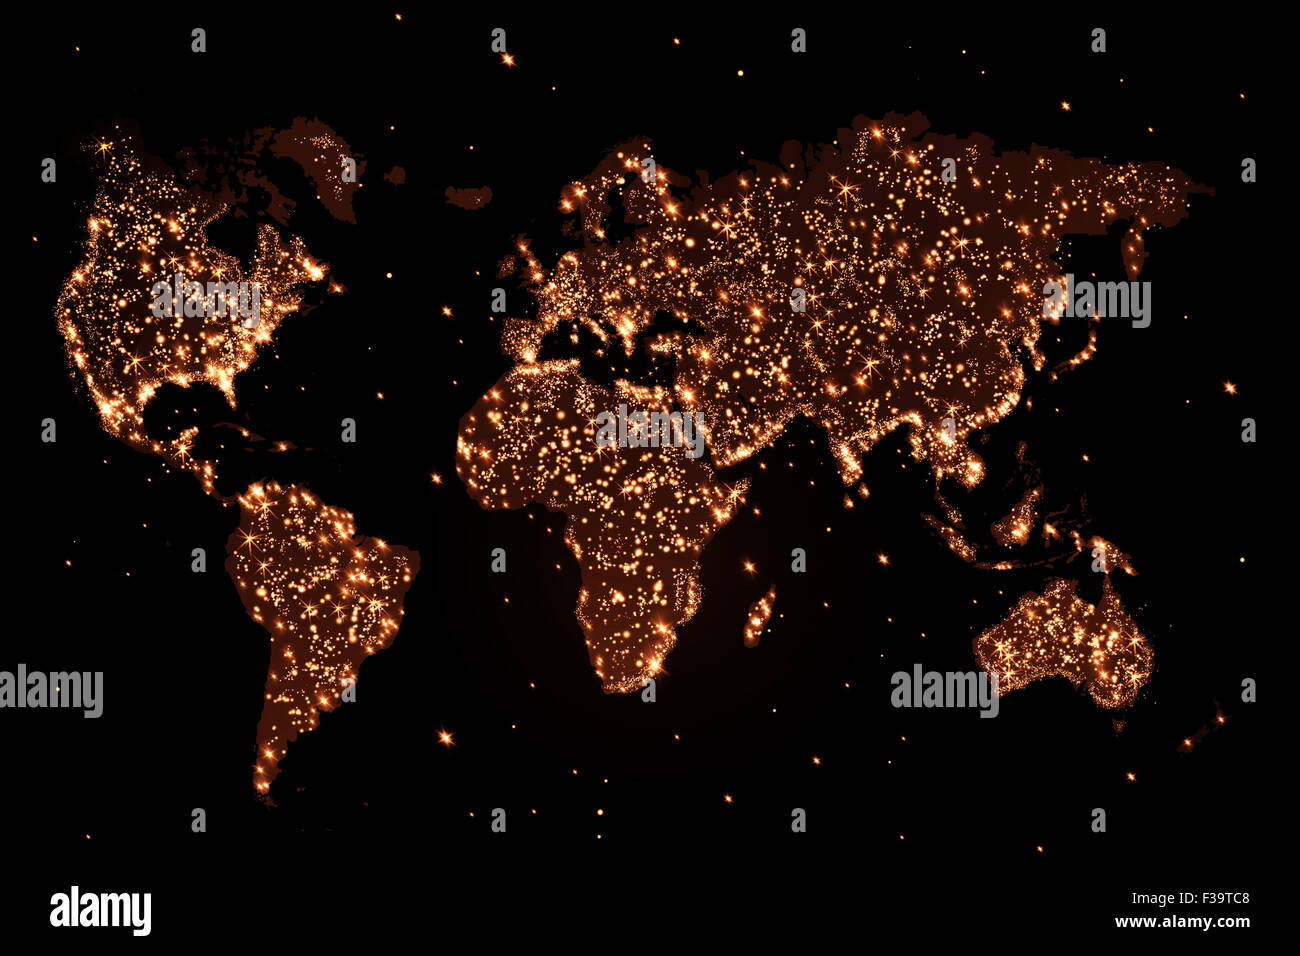 Abstract world map with lights stock photo 88112536 alamy abstract world map with lights gumiabroncs Choice Image